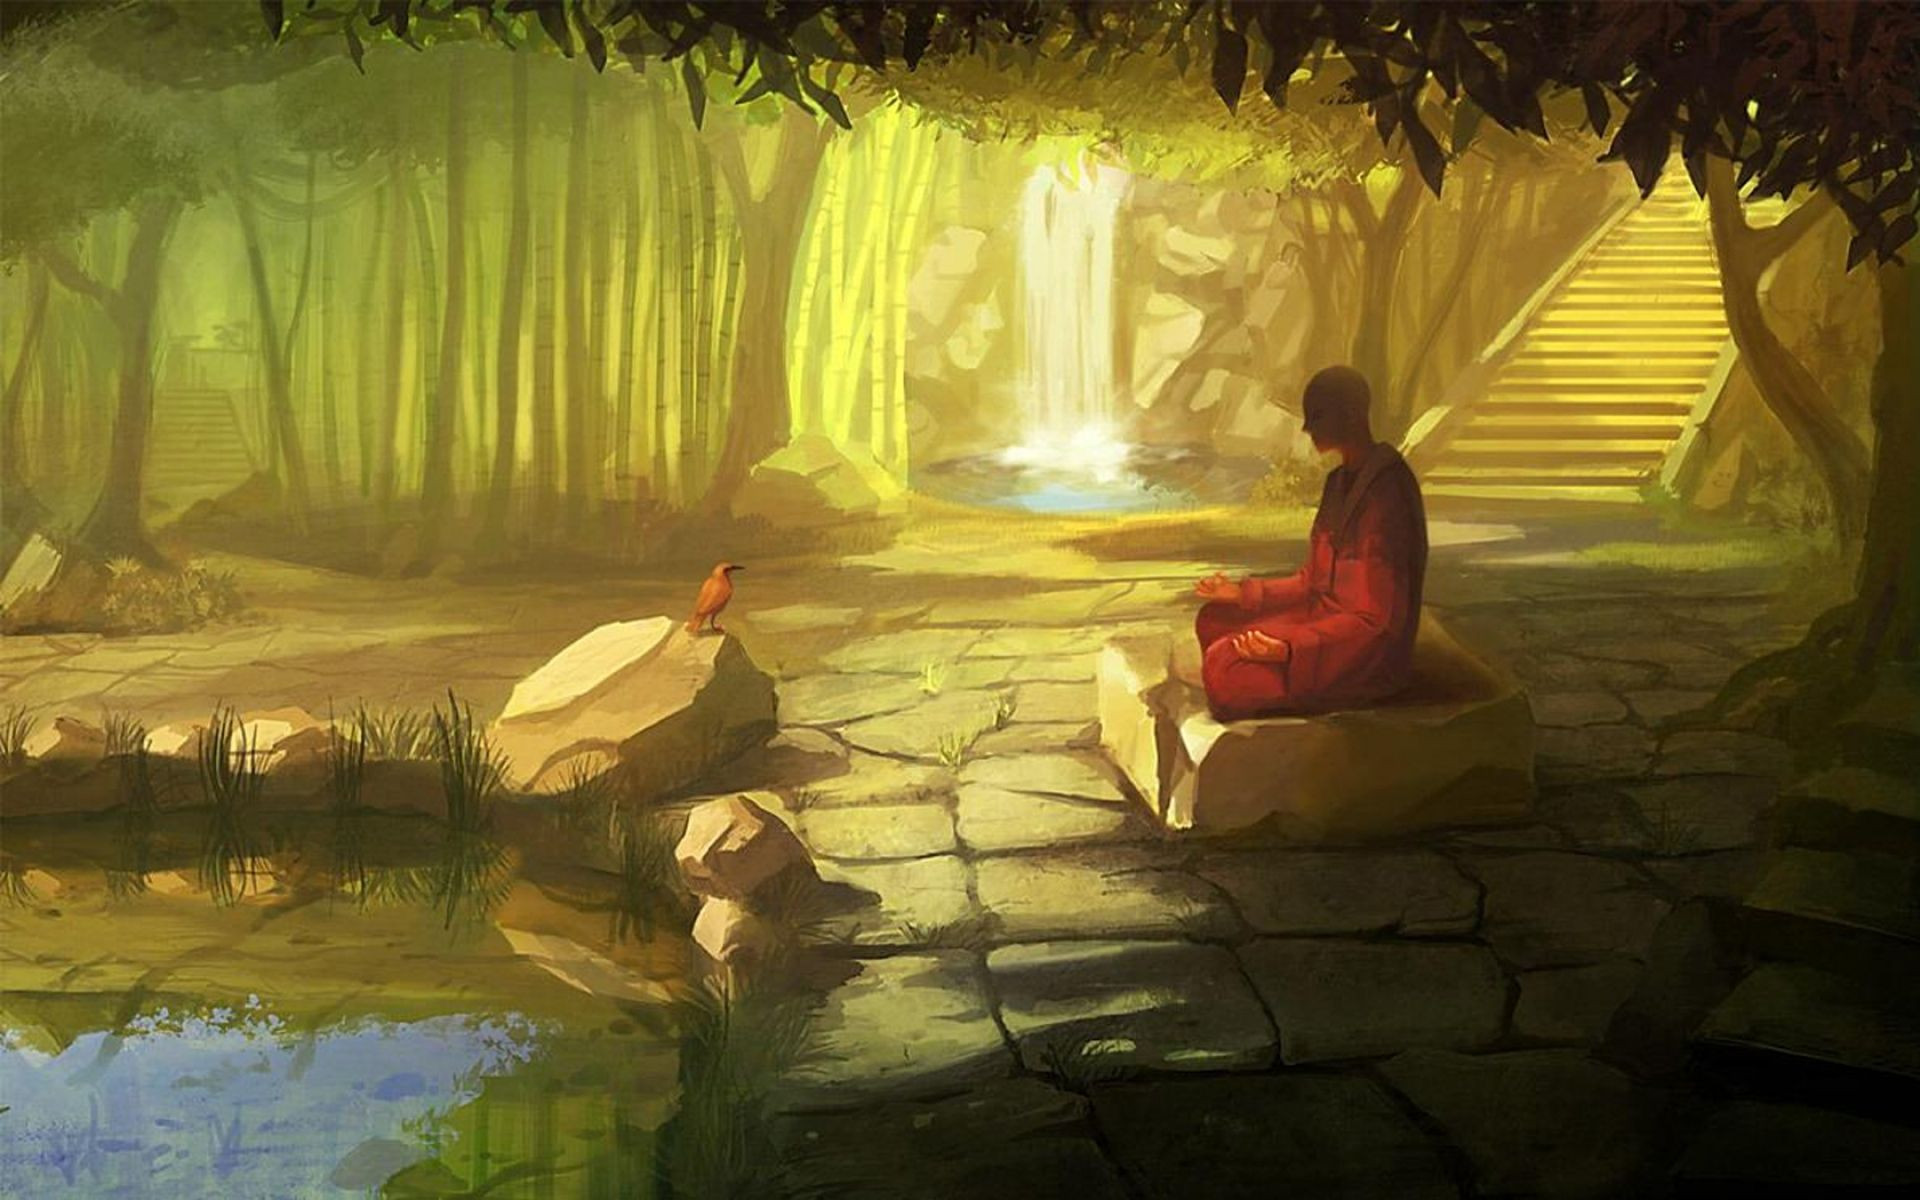 Zen Peaceful Wallpaper Hd